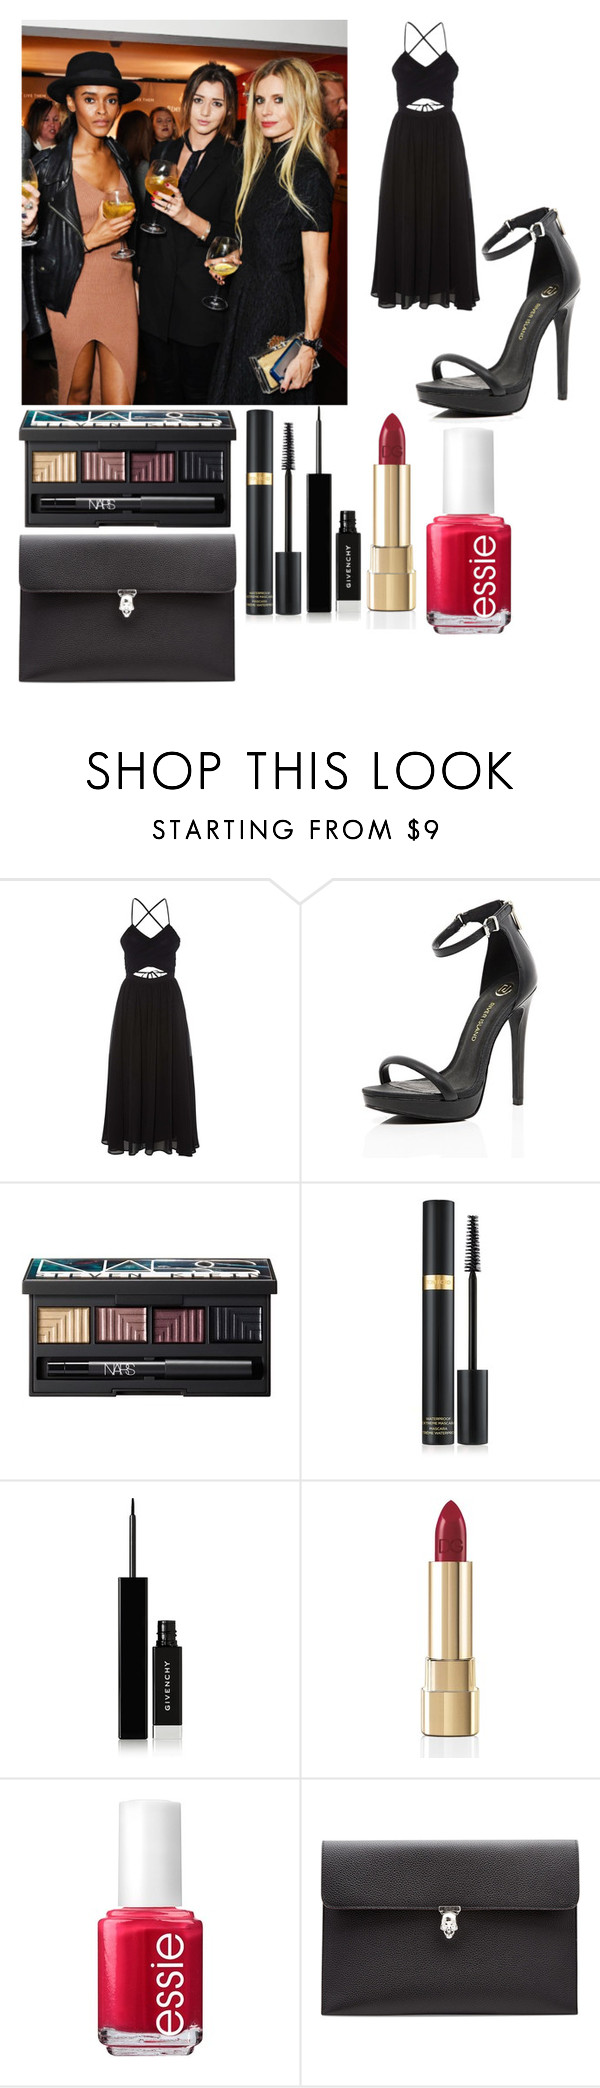 """""""Party w/ Eleanor"""" by officialarianagrandebutera ❤ liked on Polyvore featuring Topshop, River Island, NARS Cosmetics, Tom Ford, Givenchy, Dolce&Gabbana, Essie and Alexander McQueen"""